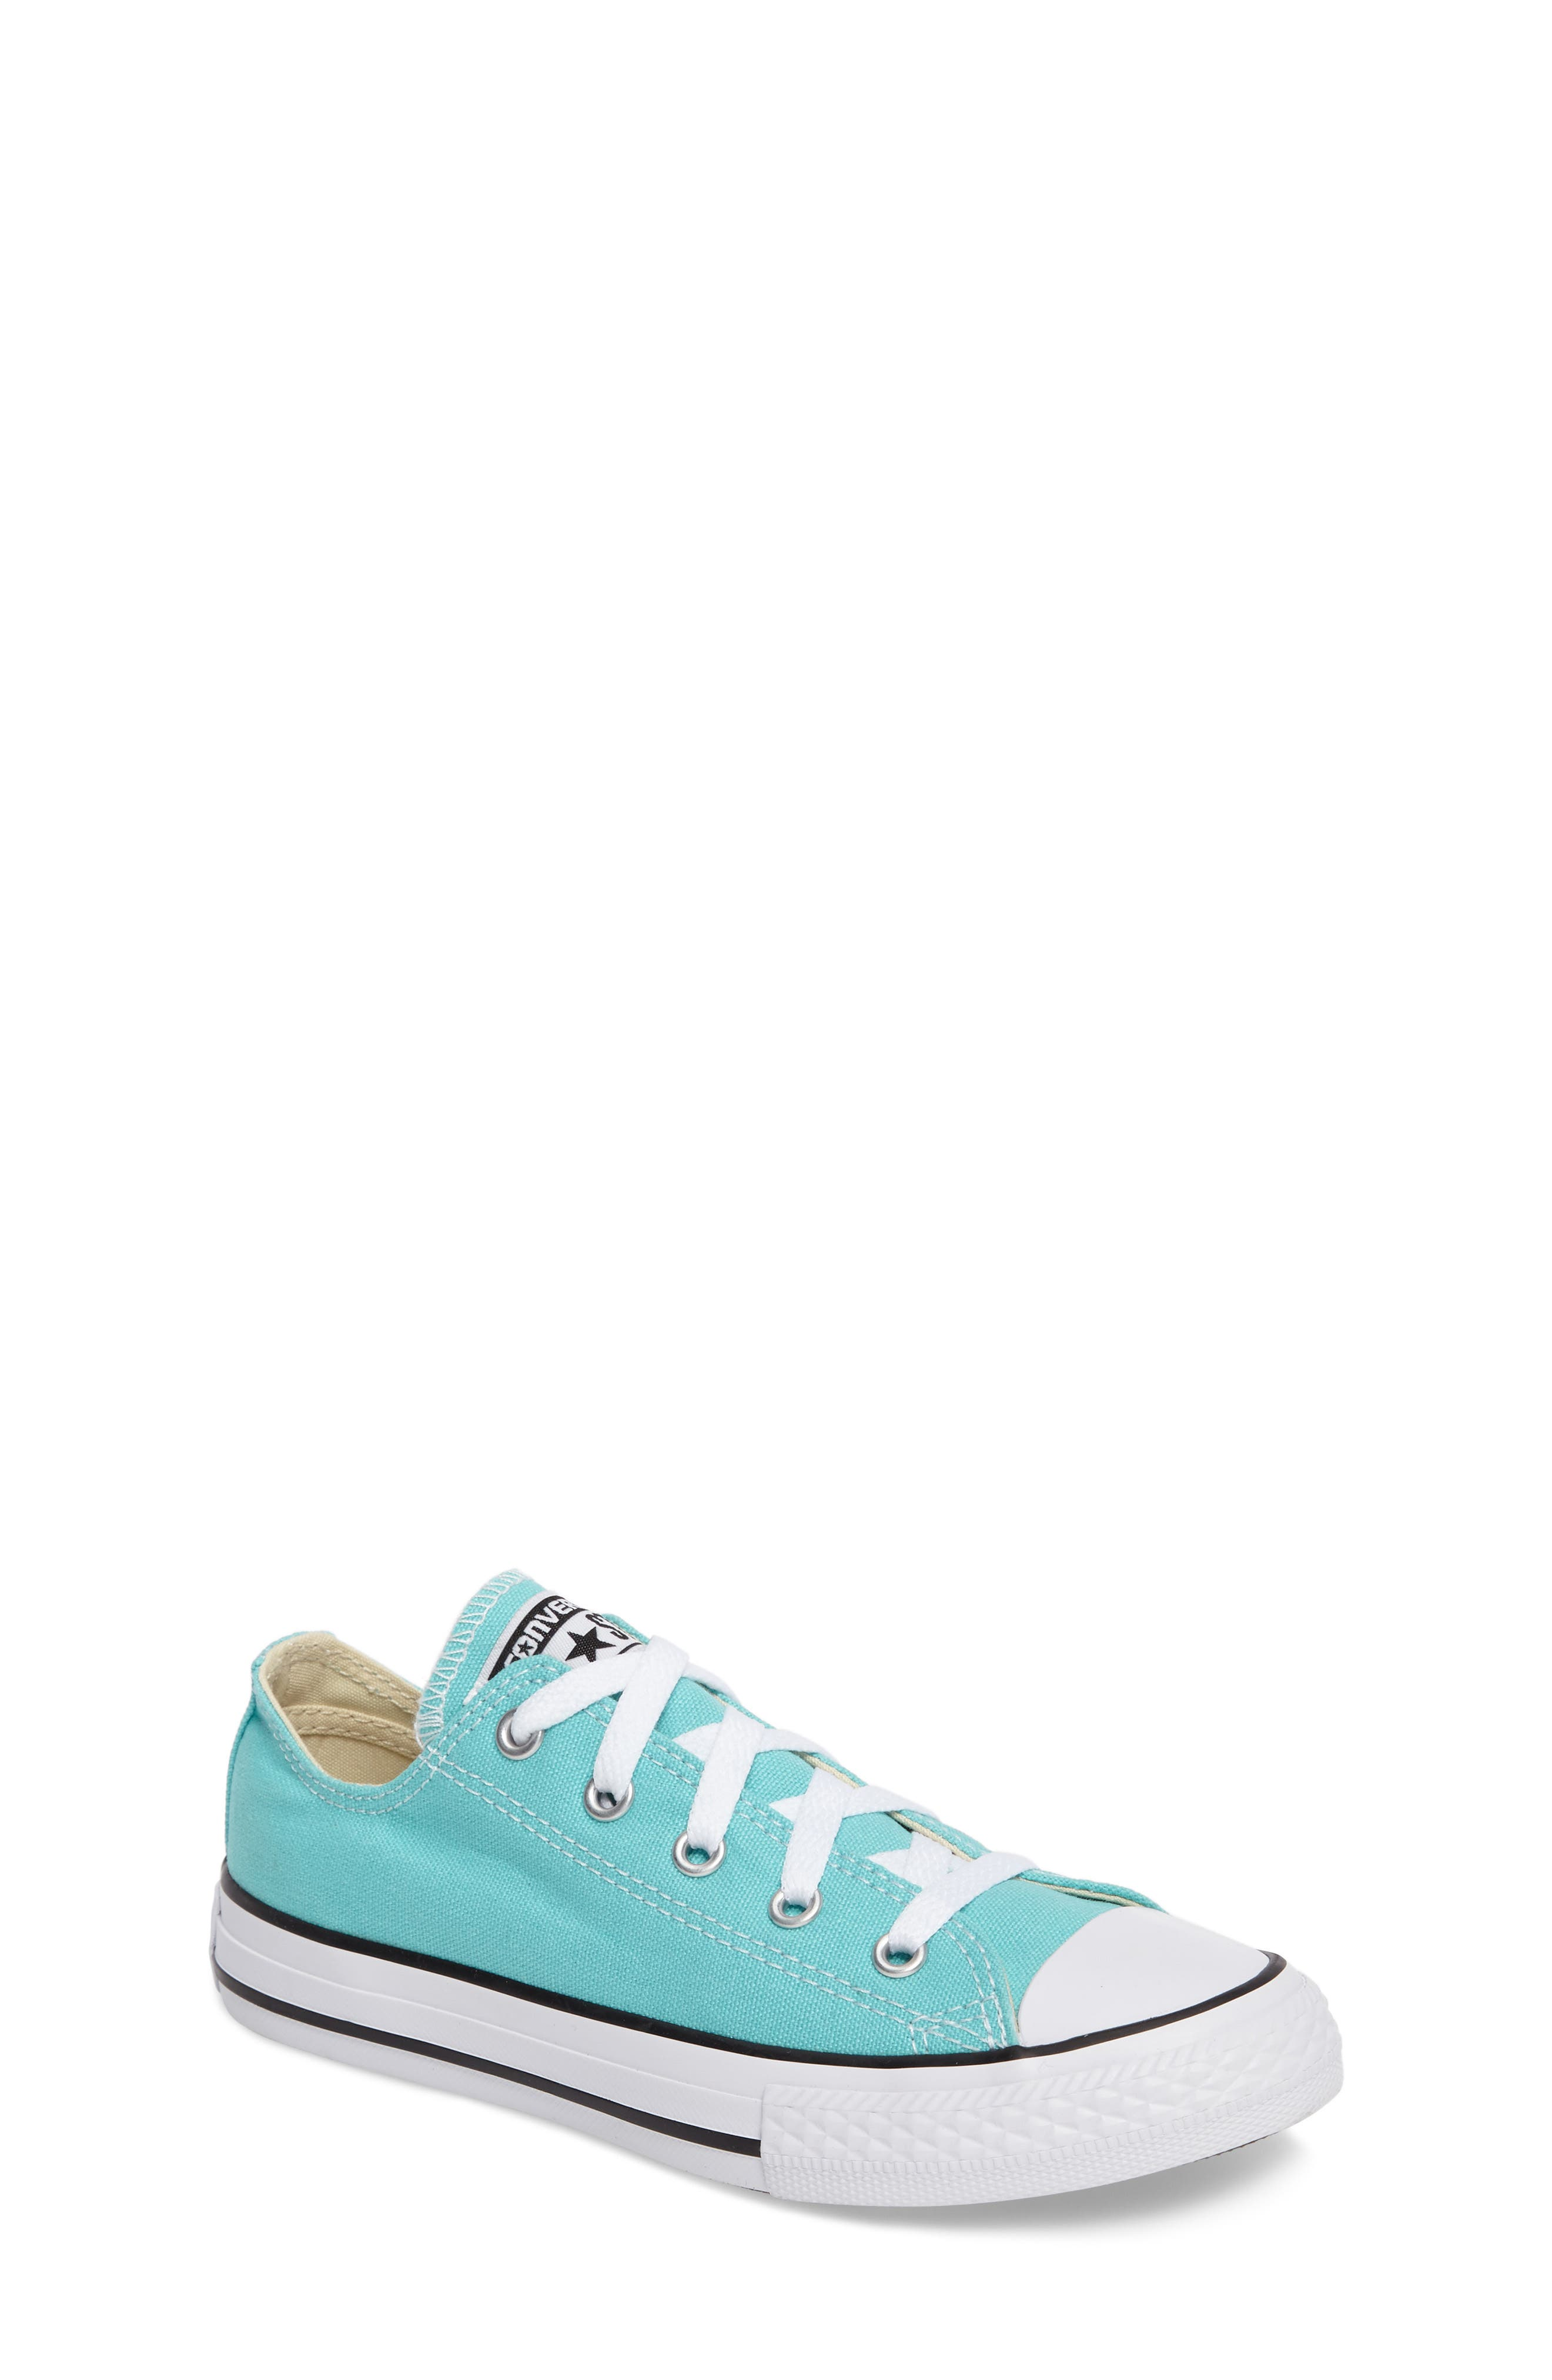 Chuck Taylor<sup>®</sup> All Star<sup>®</sup> Low Top Sneaker,                             Main thumbnail 1, color,                             406